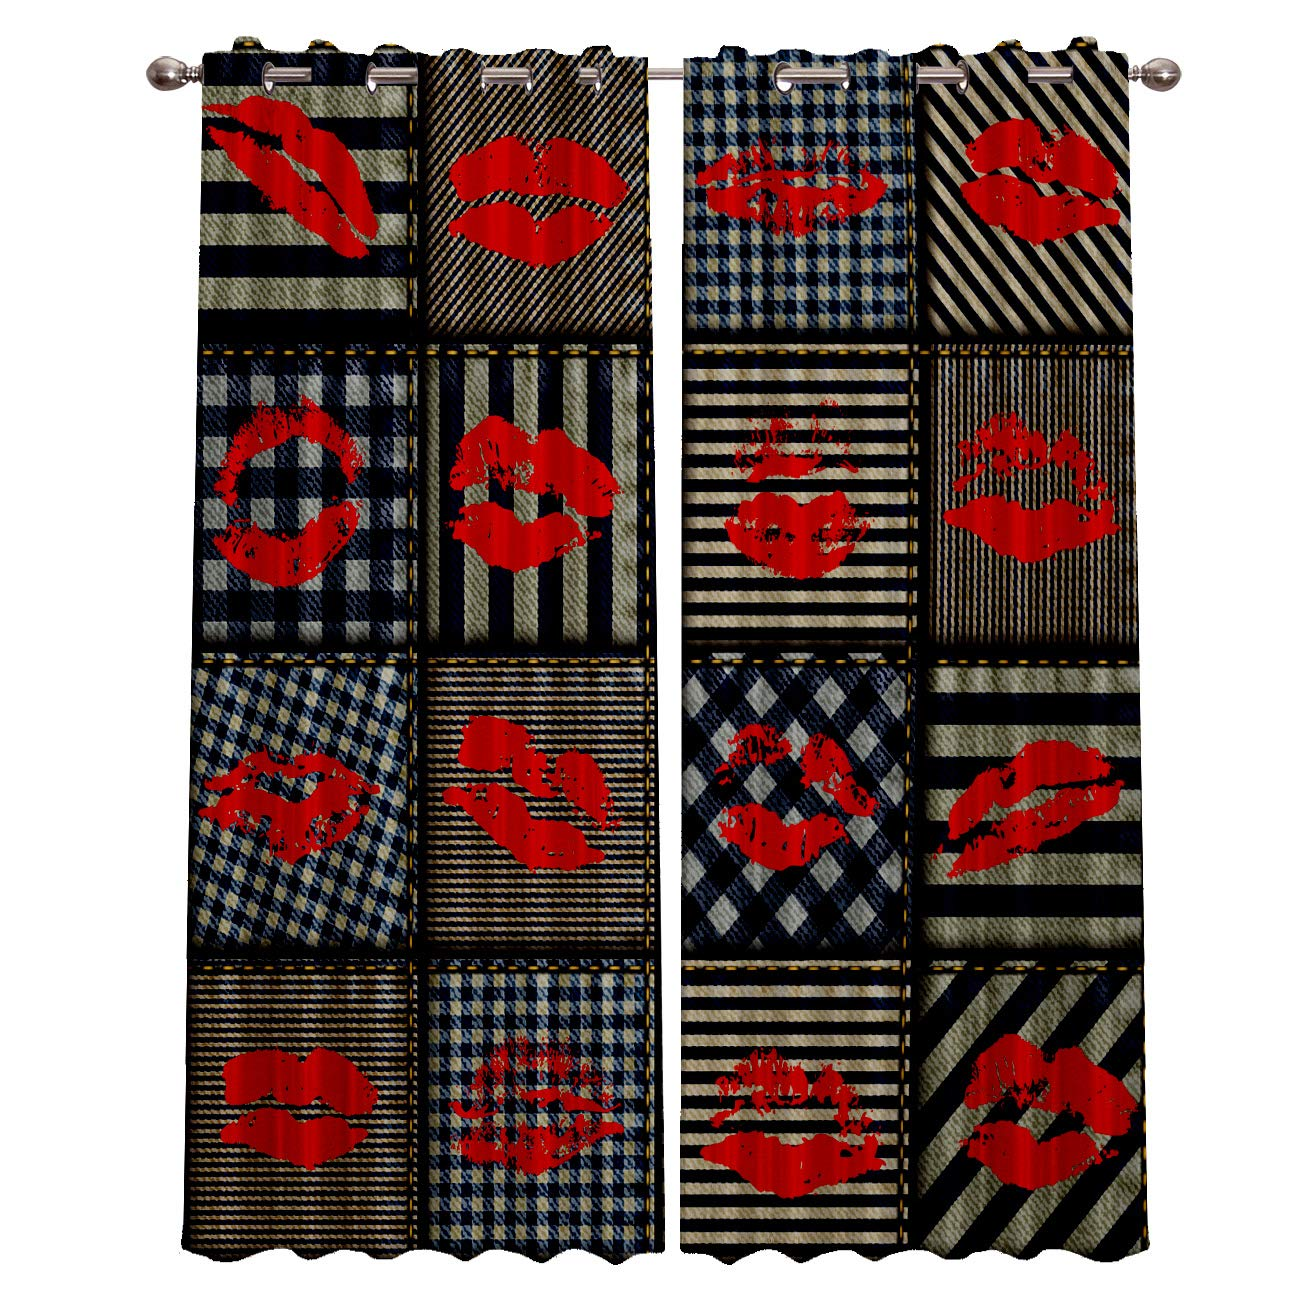 2 Panels, 27.5 x 39 Inch Each Panel Blackout Grommet Curtains for Living Room Arab Traditional Floral Pattern Home Decor Treatment Thermal Darkening Drapes Window Curtains for Bedroom